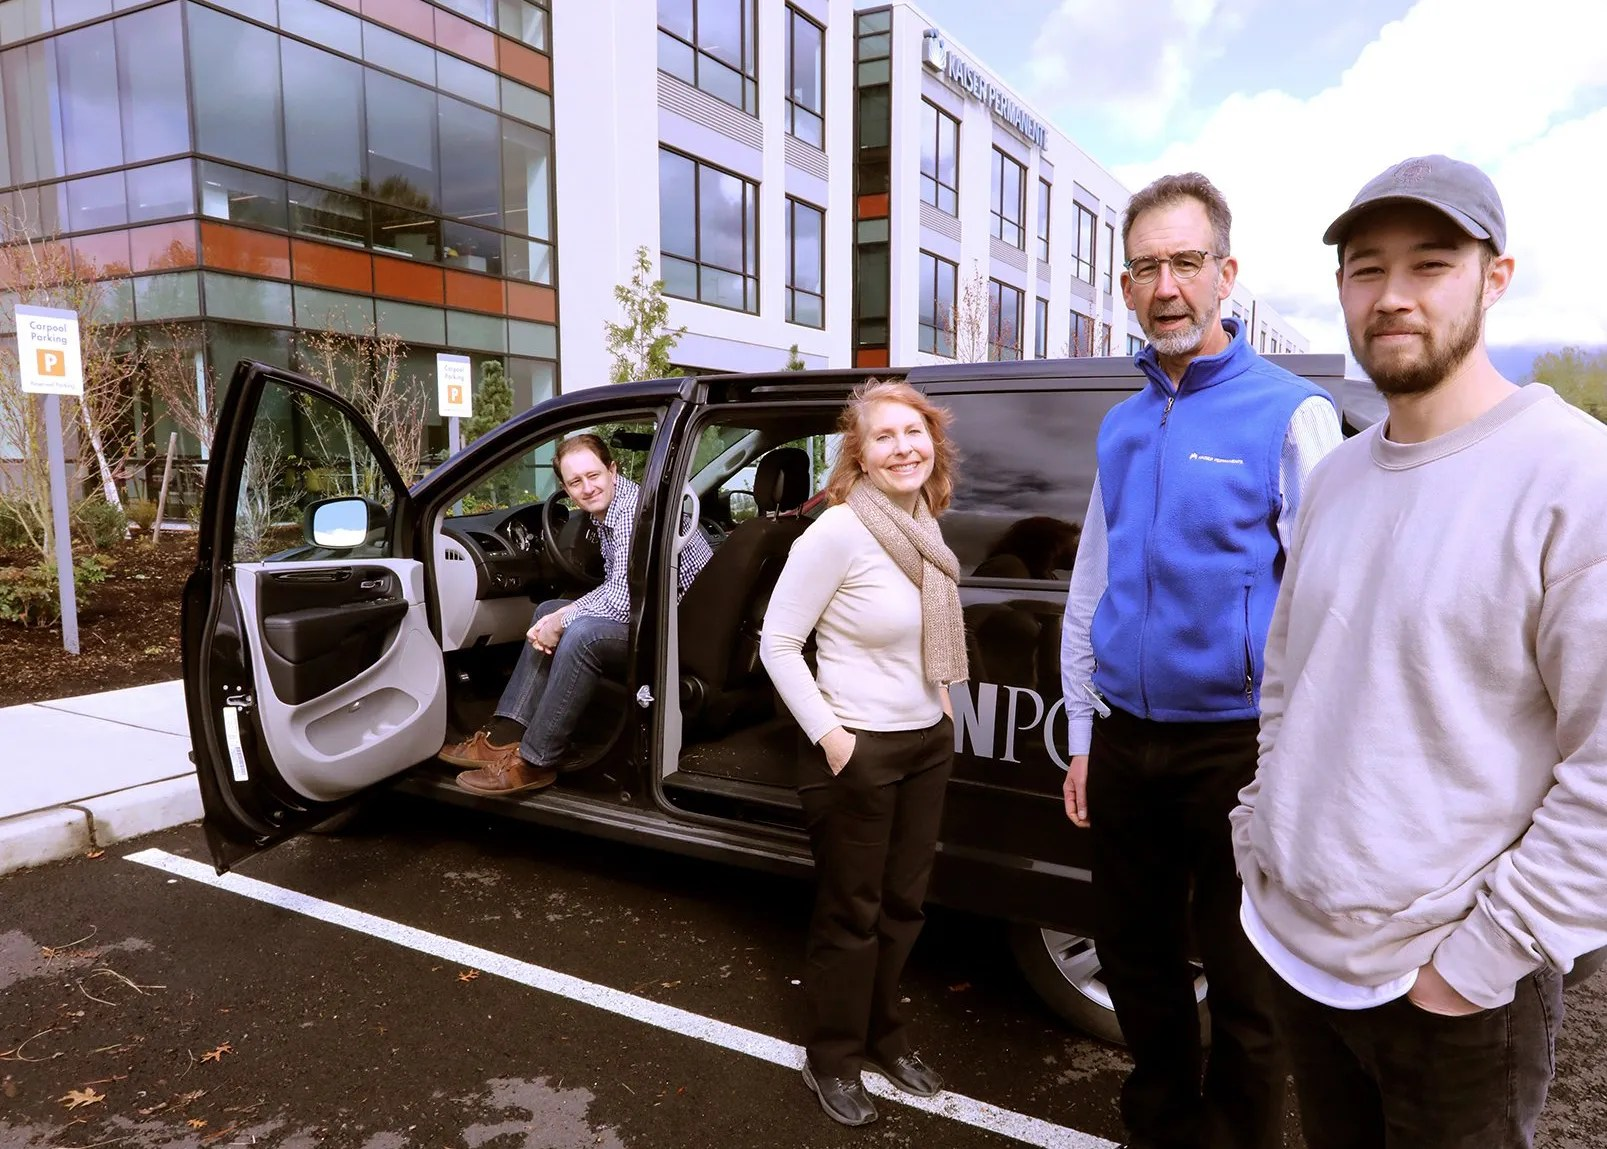 Stuck in traffic? These folks found a solution by joining a vanpool